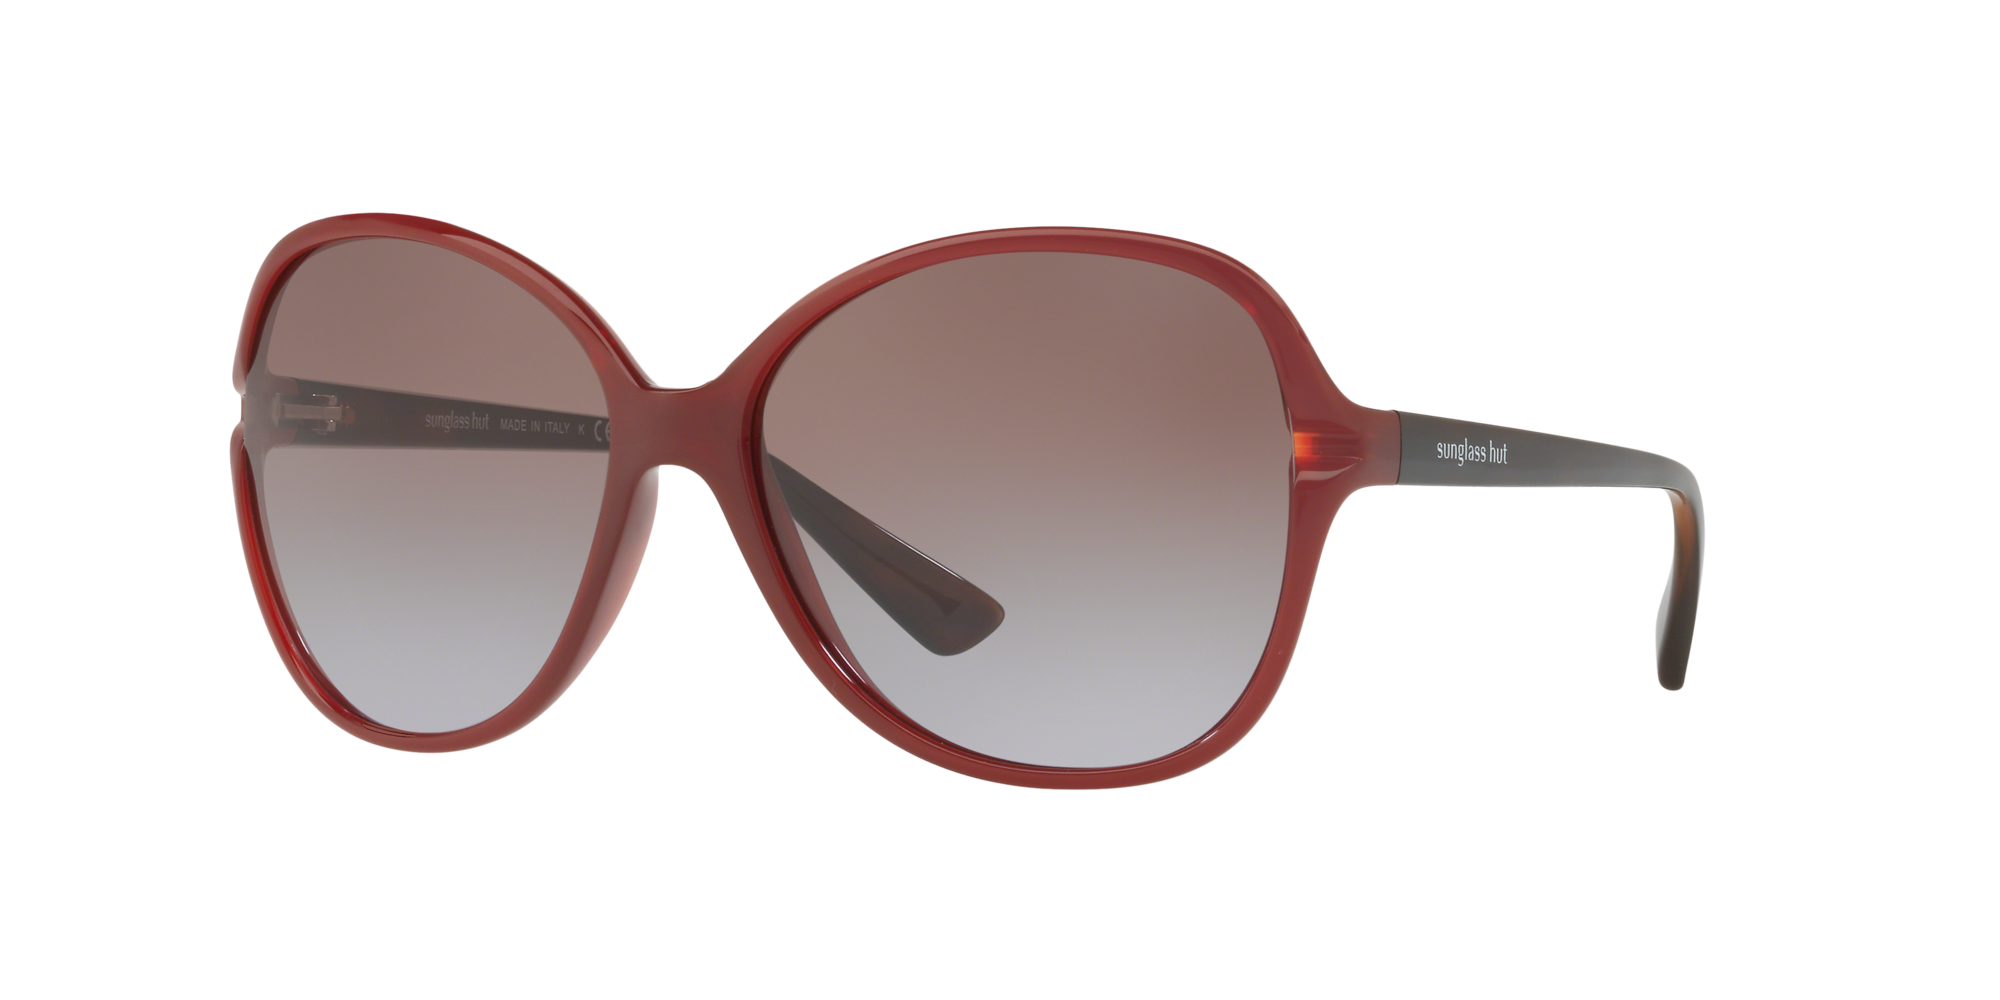 Sunglass Hut Collection Woman  HU2001 -  Frame color: Red, Lens color: Brown, Size 60-16/130